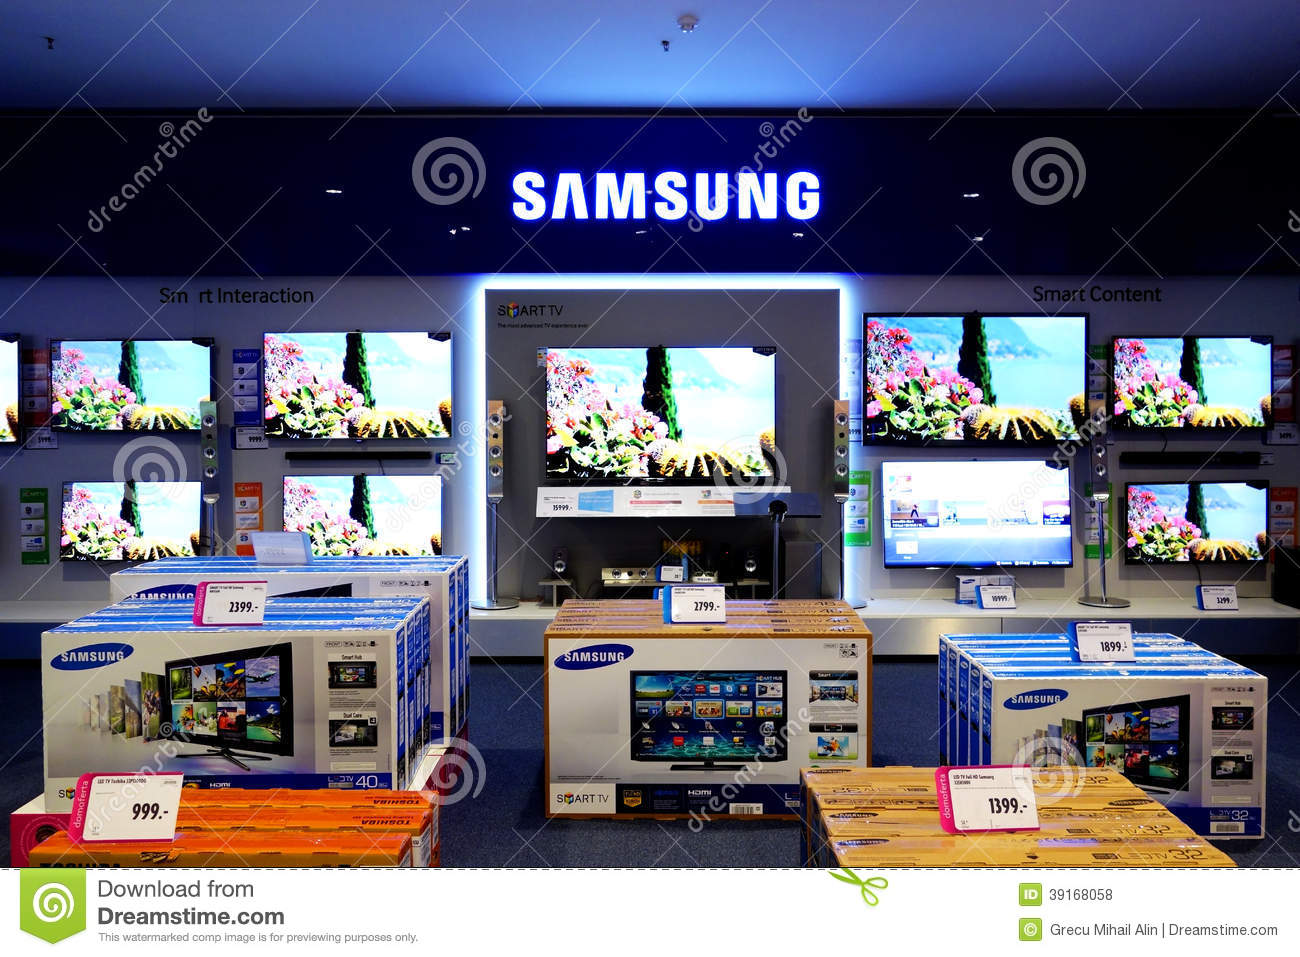 Samsung Television Smart Tv Editorial Stock Photo - Image: 39168058